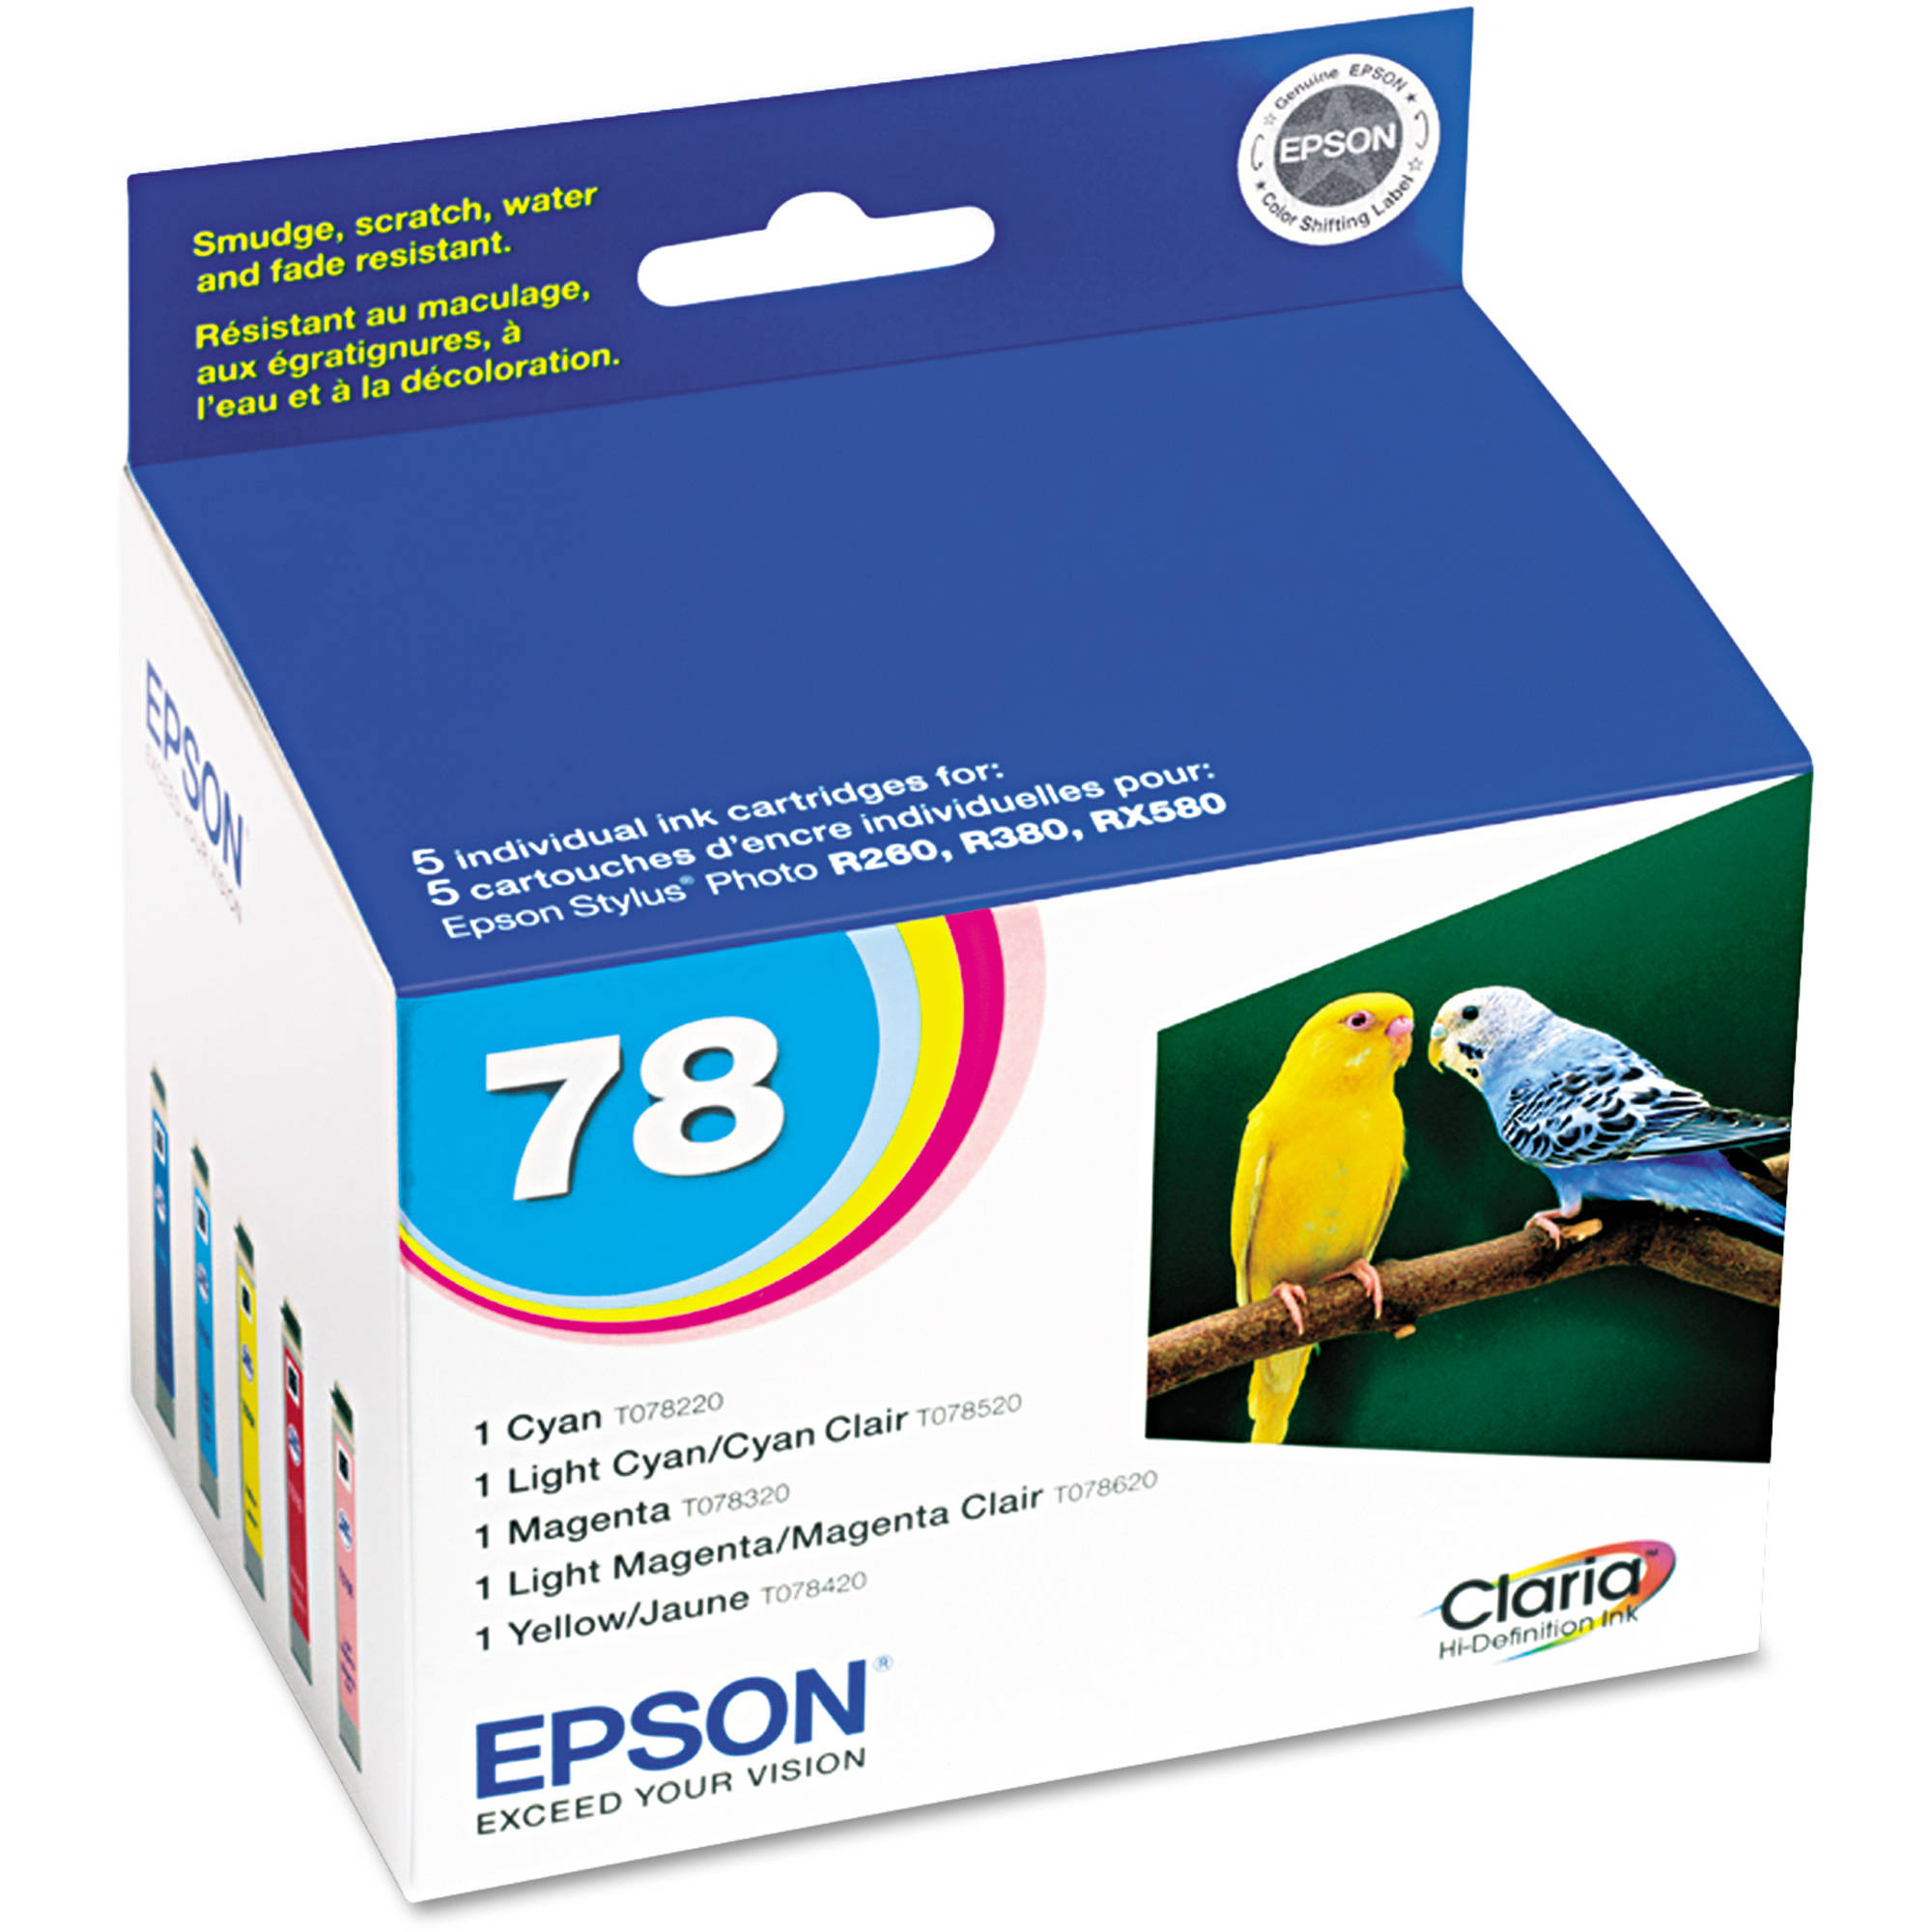 Epson T078920 Claria Hi-Definition Color Multi-Pack Ink Cartridge by Epson